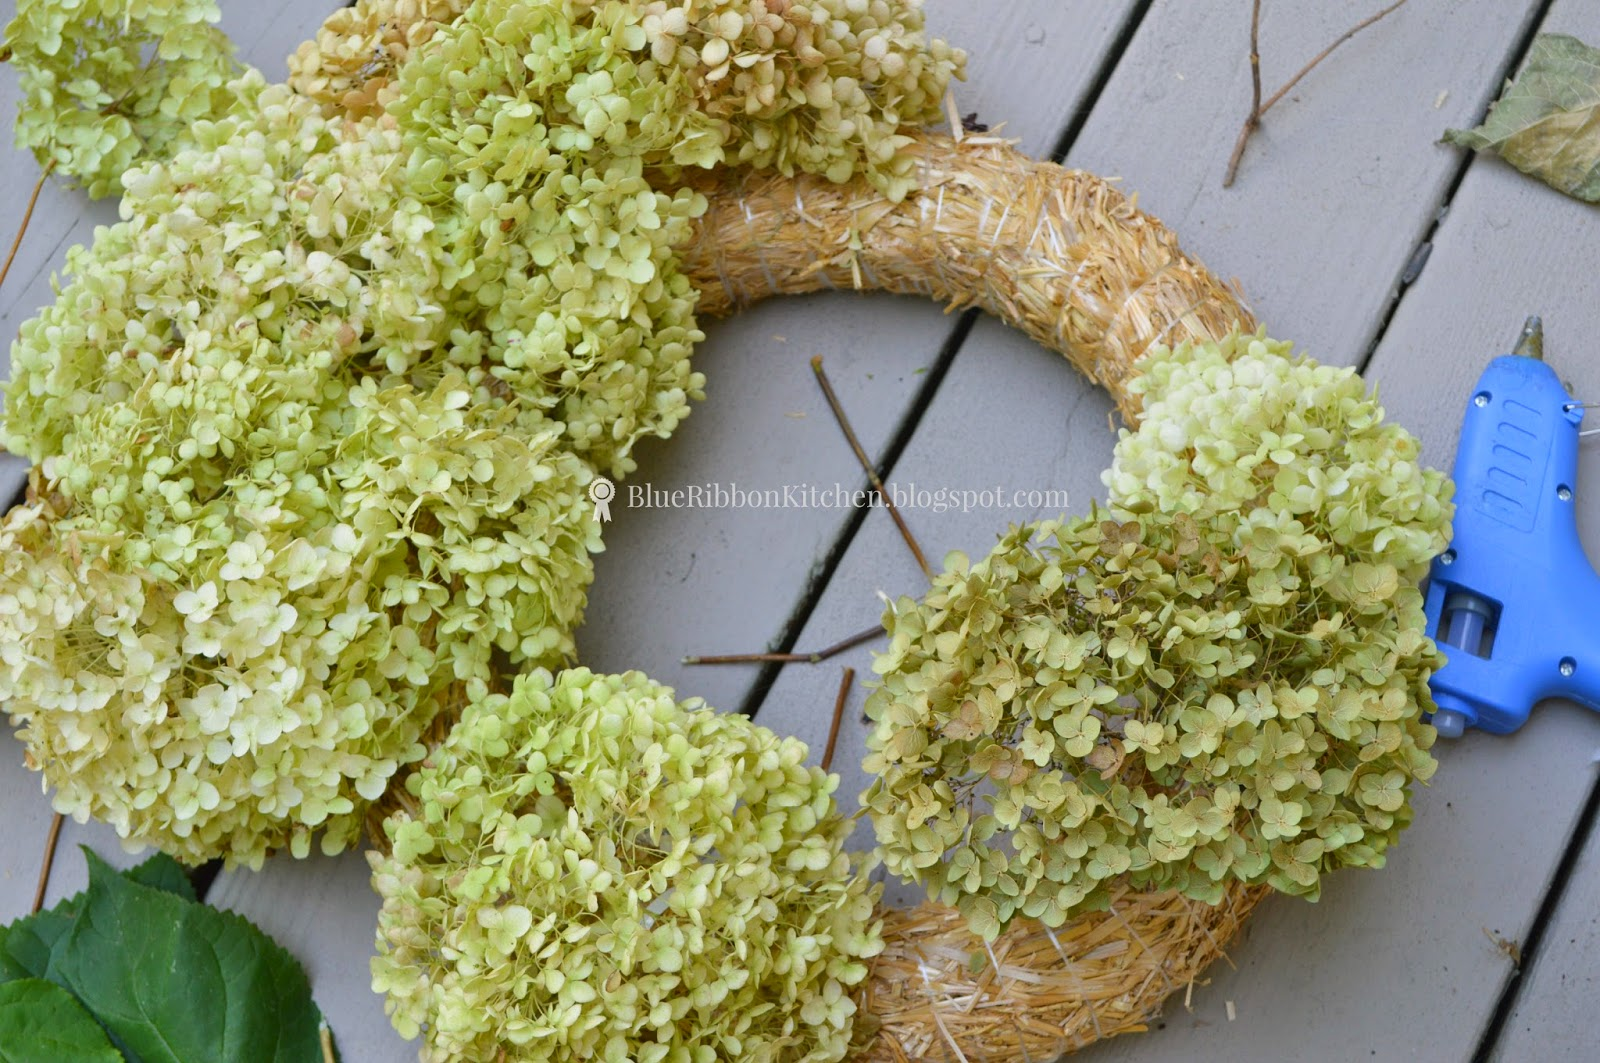 Blue ribbon kitchen dried hydrangeas wreath centerpiece